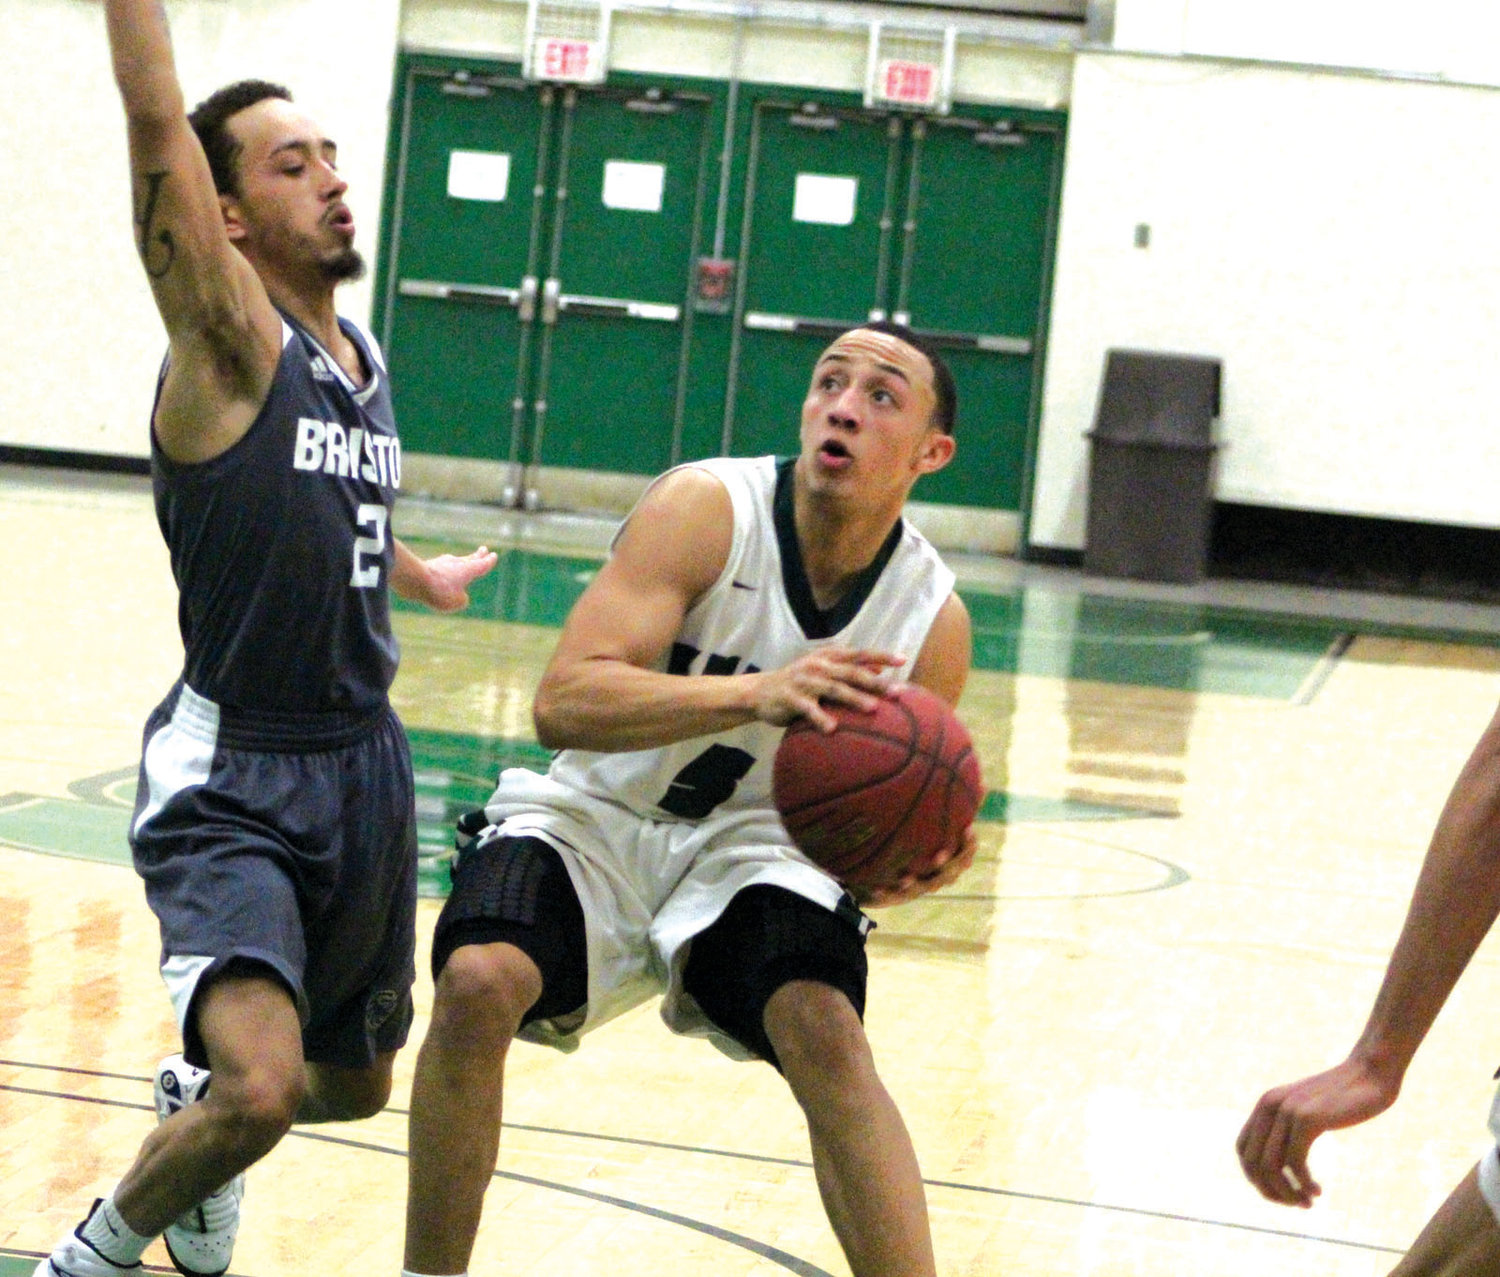 IN THE PAINT: CCRI's JC Santos works past a Bristol defender.